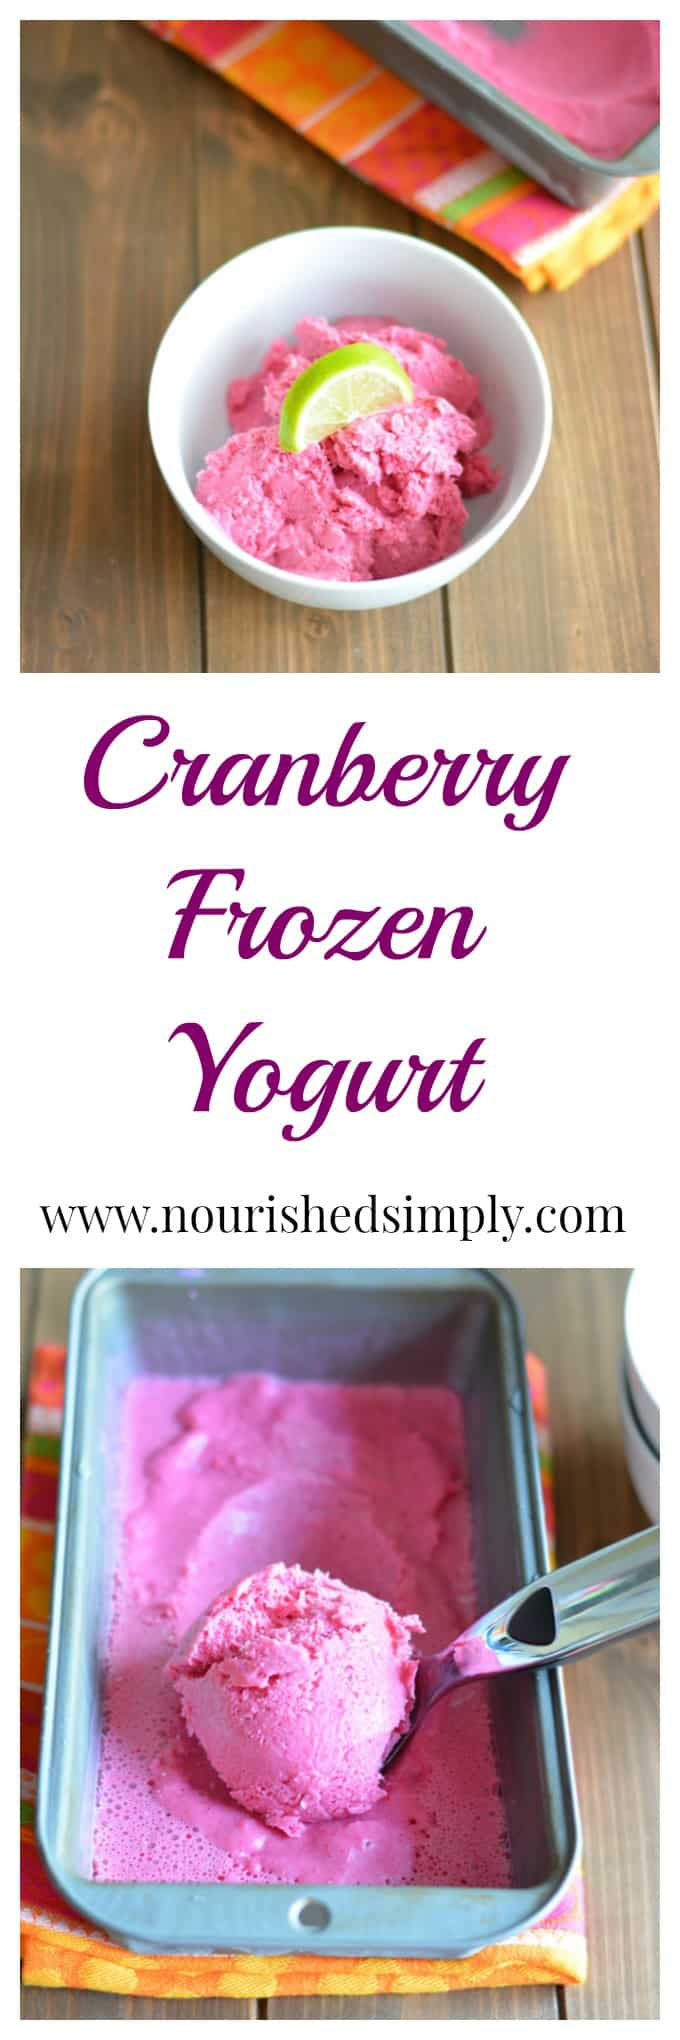 Cranberry Frozen Yogurt made with leftover cranberry sauce and Greek yogurt.